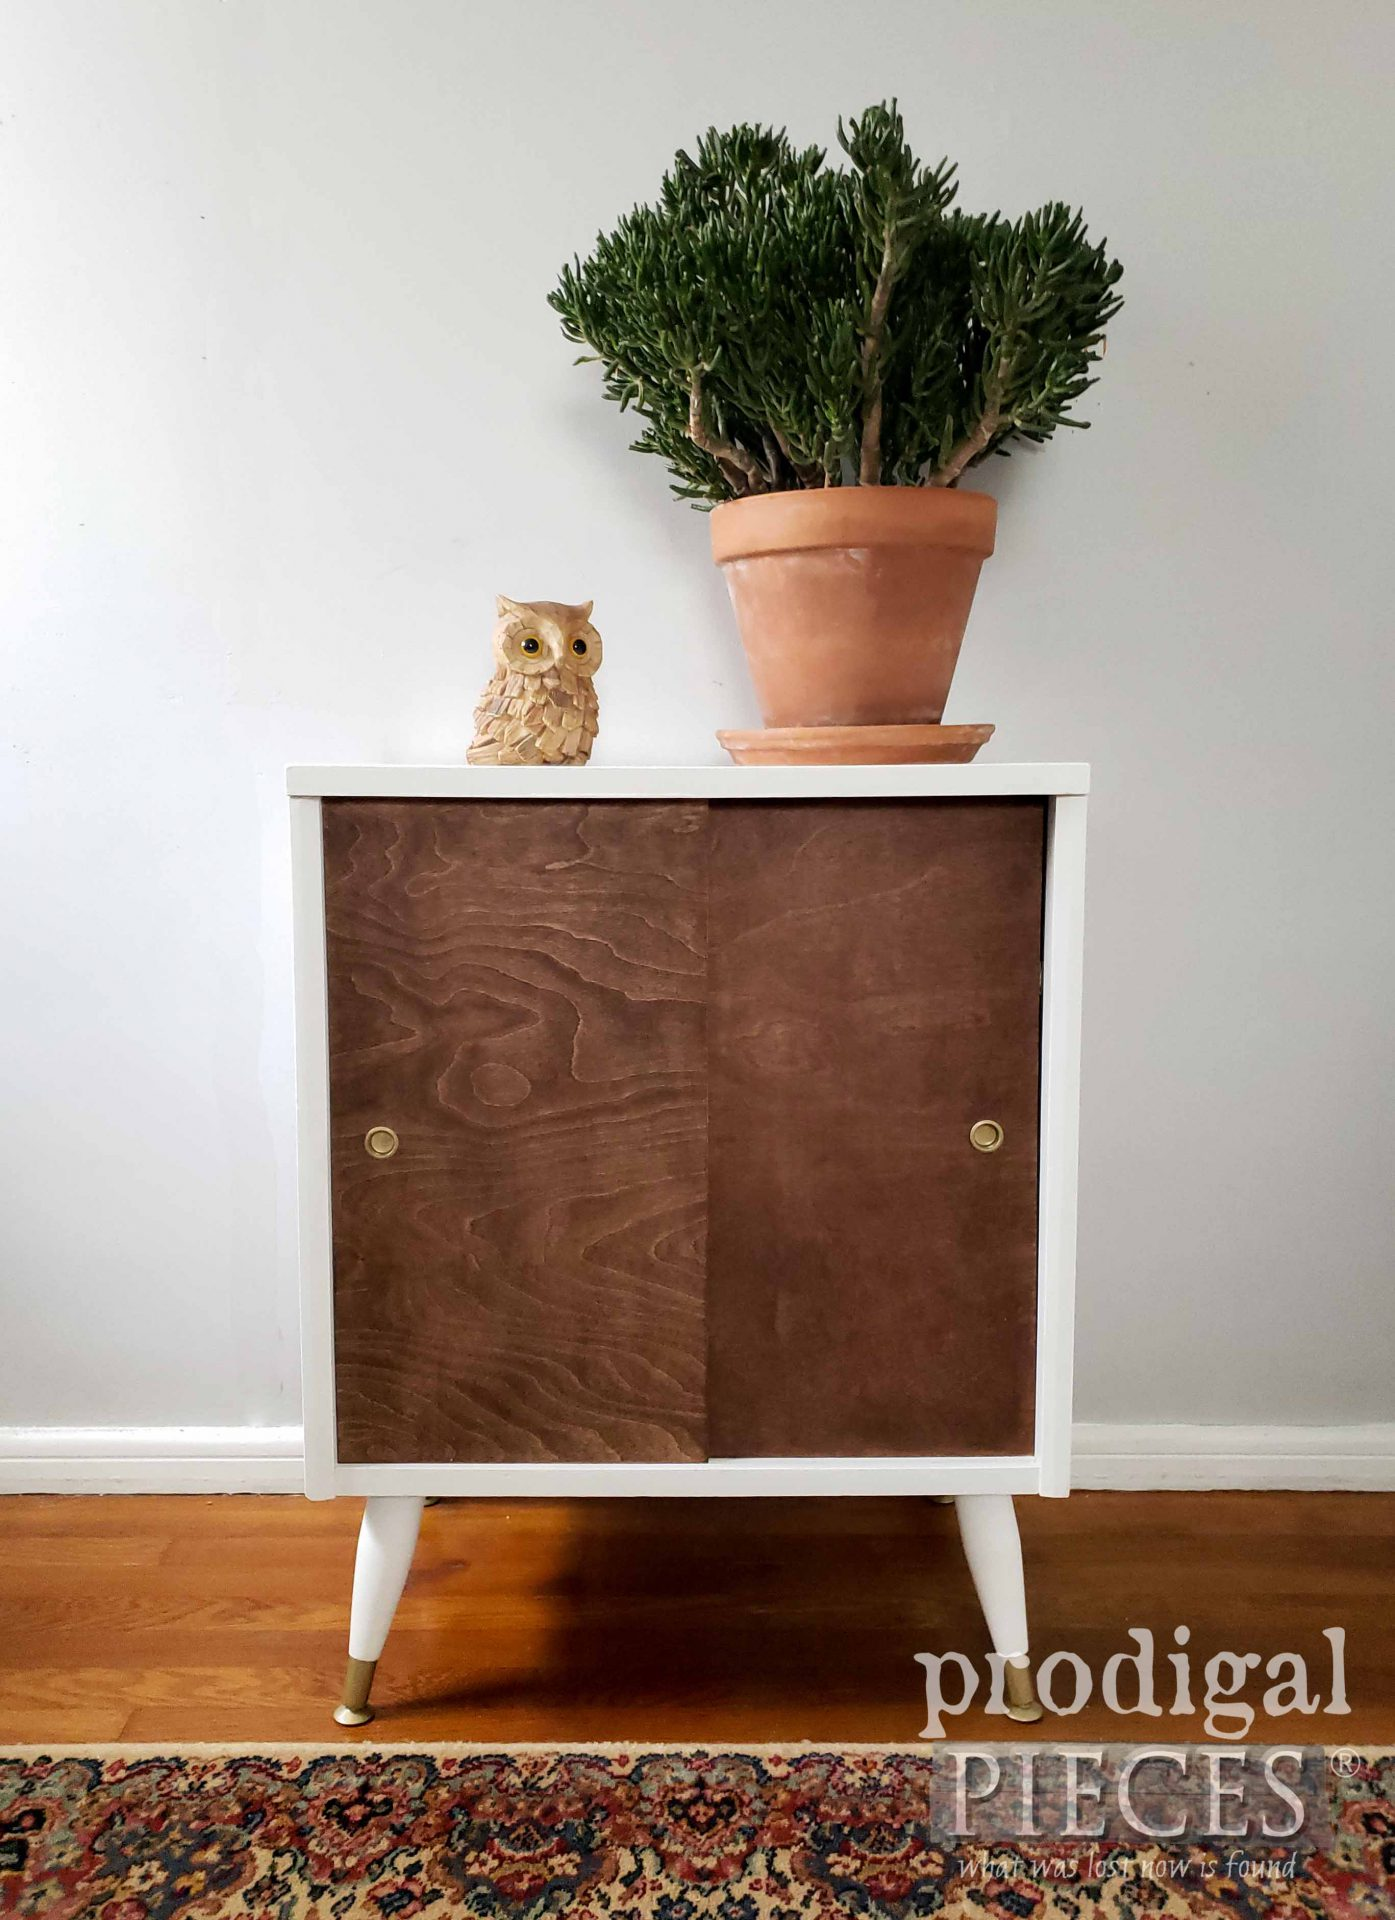 Vintage Mid Century Modern Media Stand Made New by Larissa of Prodigal Pieces | prodigalpieces.com #prodigalpieces #midcentury #modern #diy #furniture #boho #home #homedecor